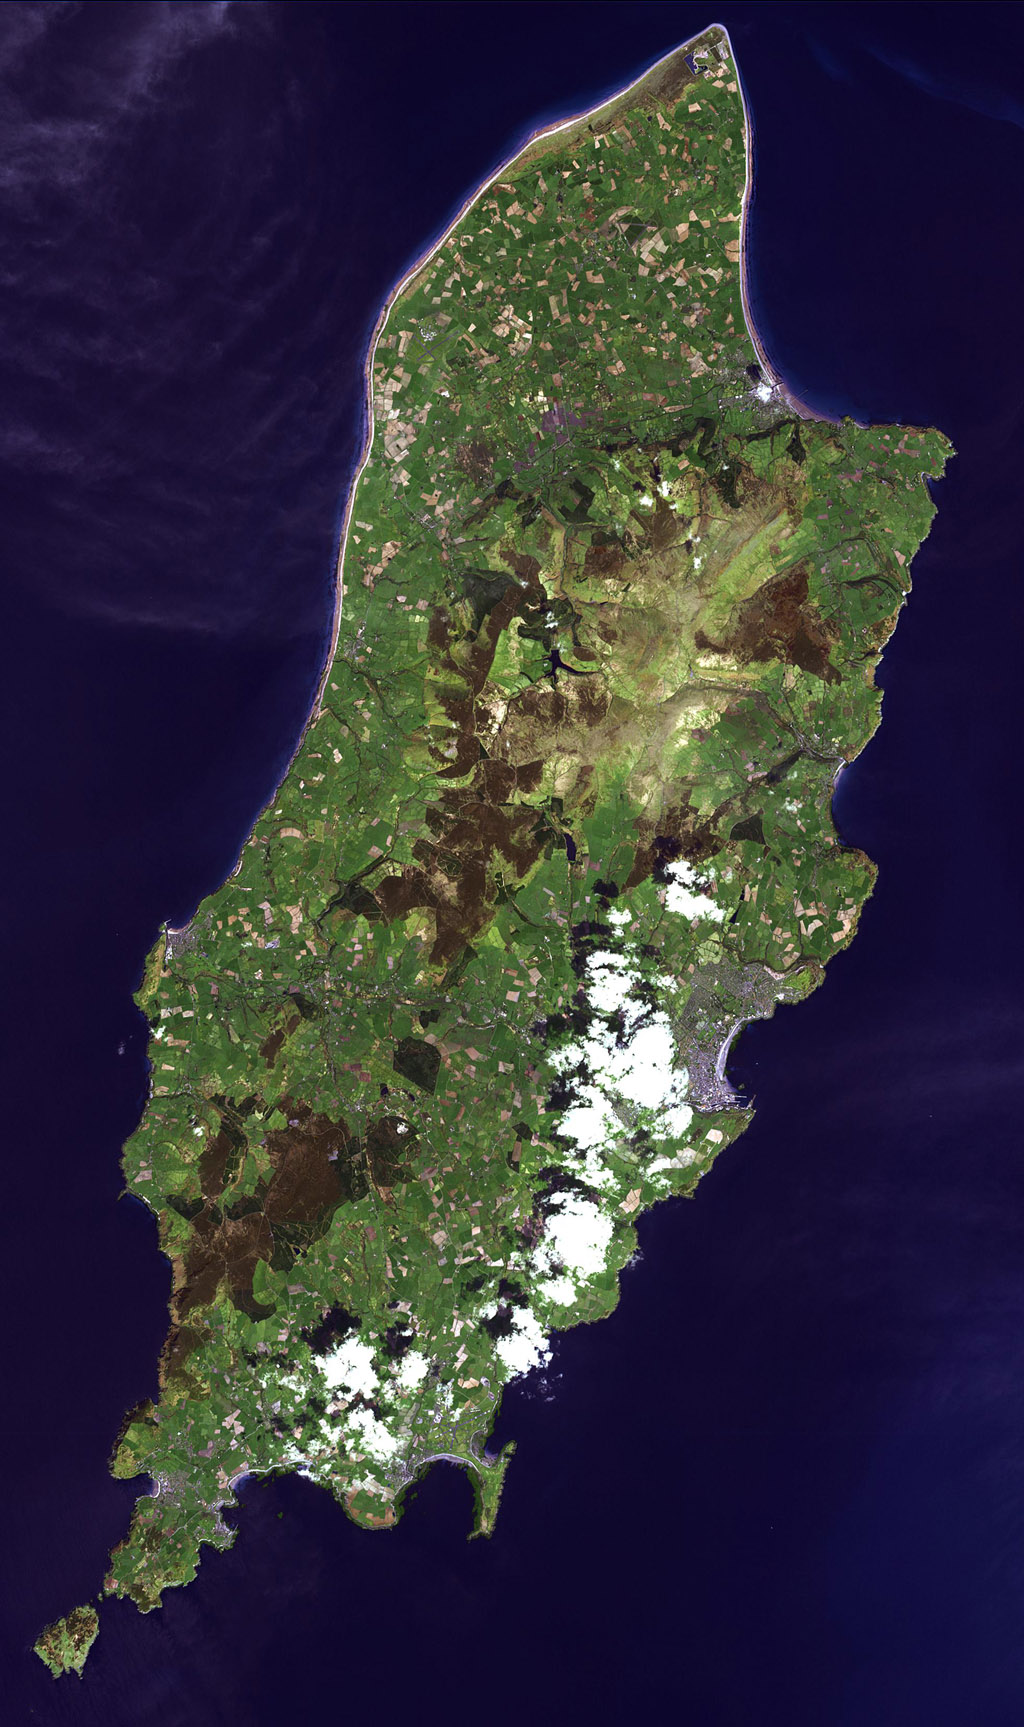 This image from NASA's Terra spacecraft is of the Isle of Man (also known as Mann), a self-governing British Crown Dependency in the Irish Sea between Great Britain and Ireland.